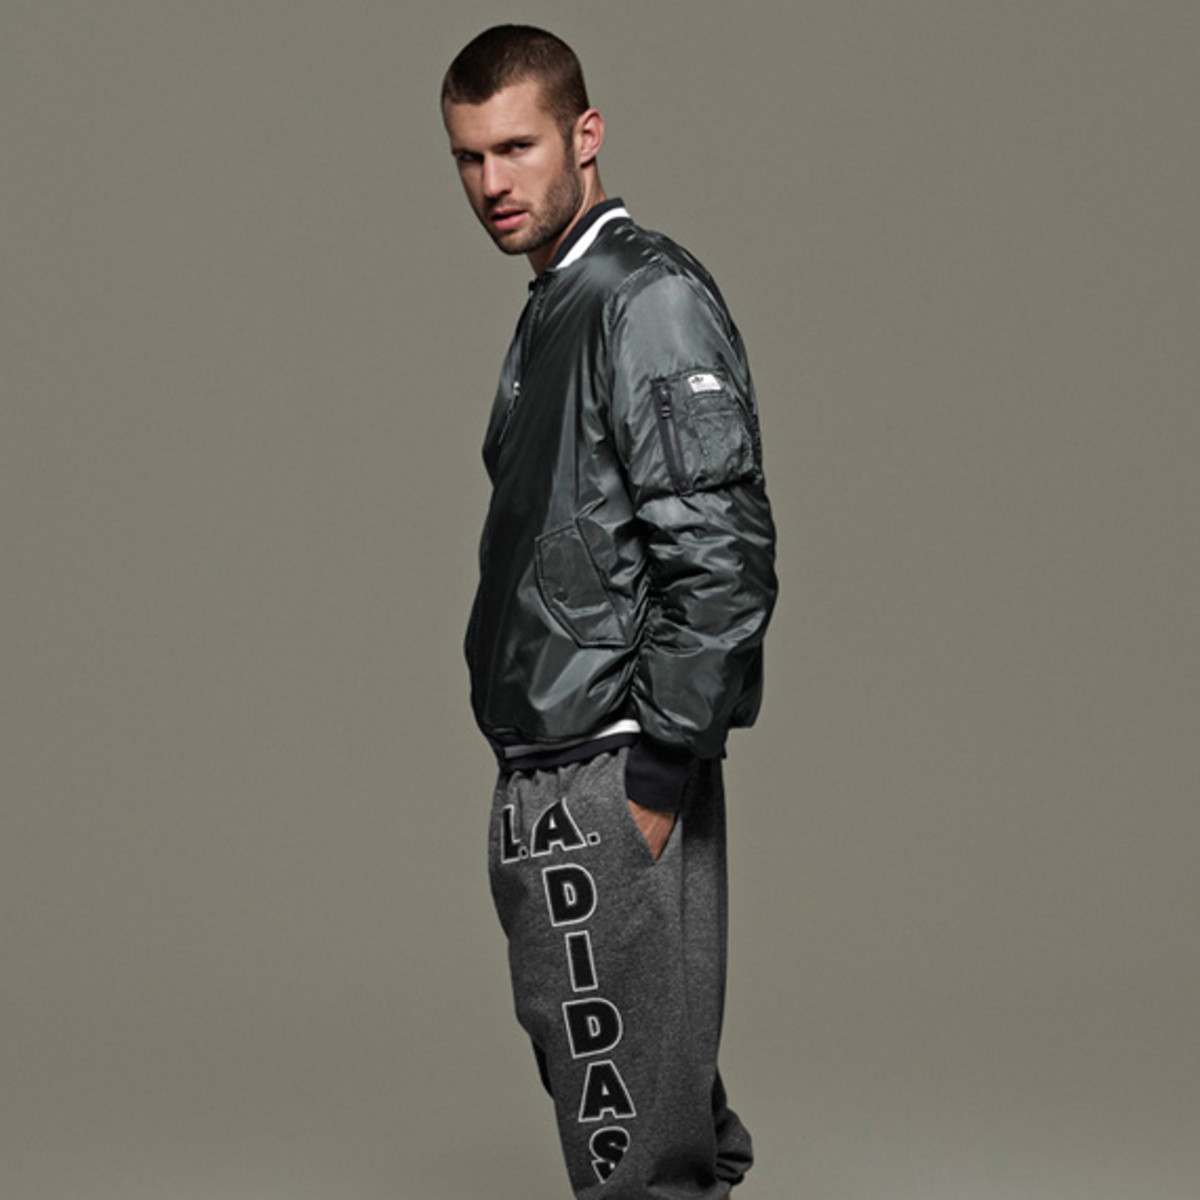 Incompetencia Mal funcionamiento Privilegio  adidas Originals by Originals James Bond For David Beckham Spring/Summer  2011 Collection Lookbook - Freshness Mag